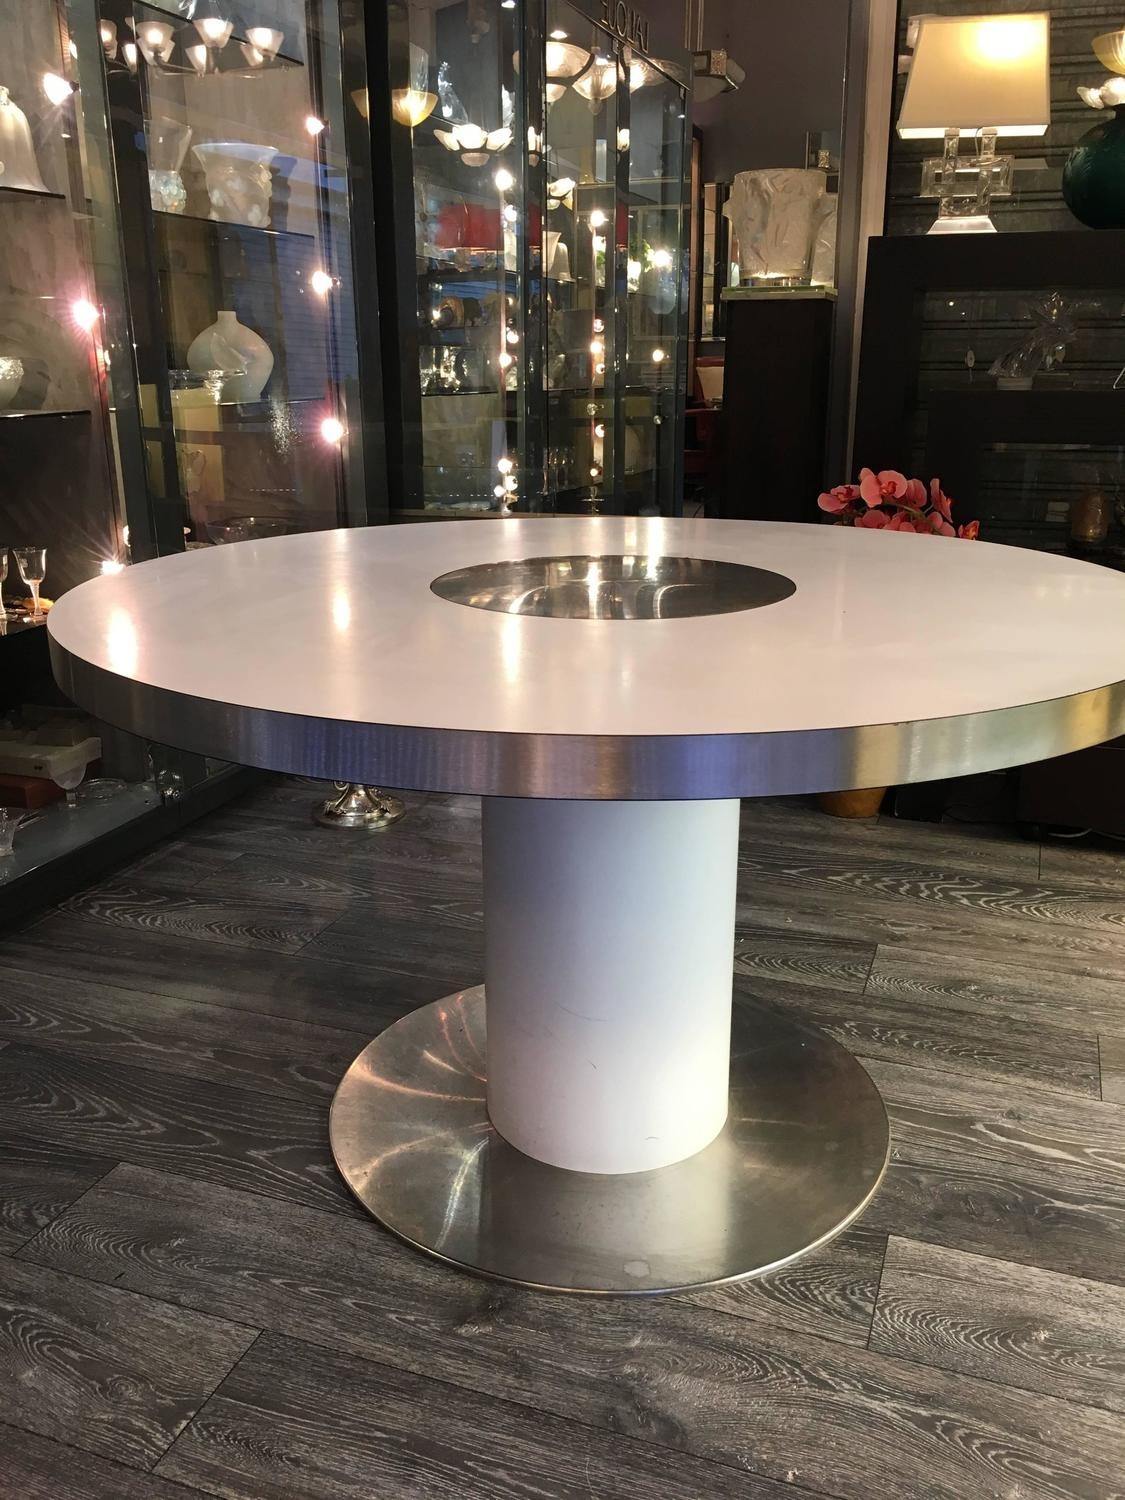 Willy rizzo dining table savage for sale at 1stdibs for Table willy rizzo